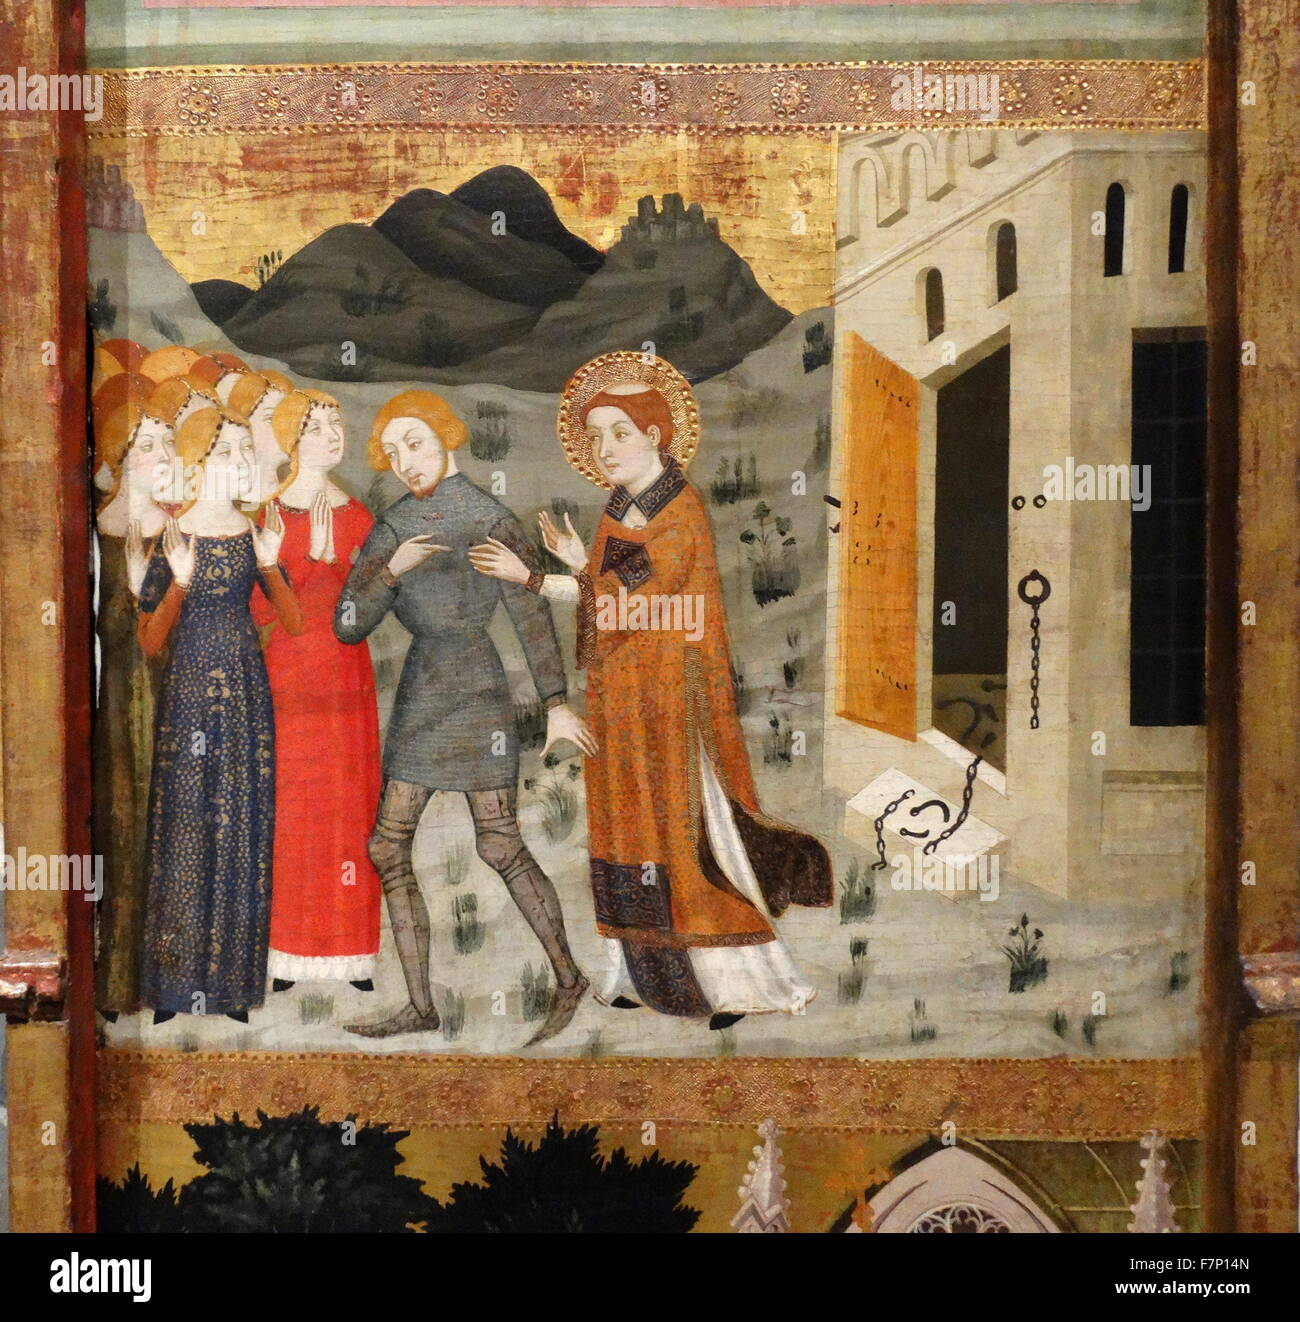 Altarpiece of Saint Stephen by Jaime Serra (1358-1395) Catalonian painter. Dated 14th Century - Stock Image